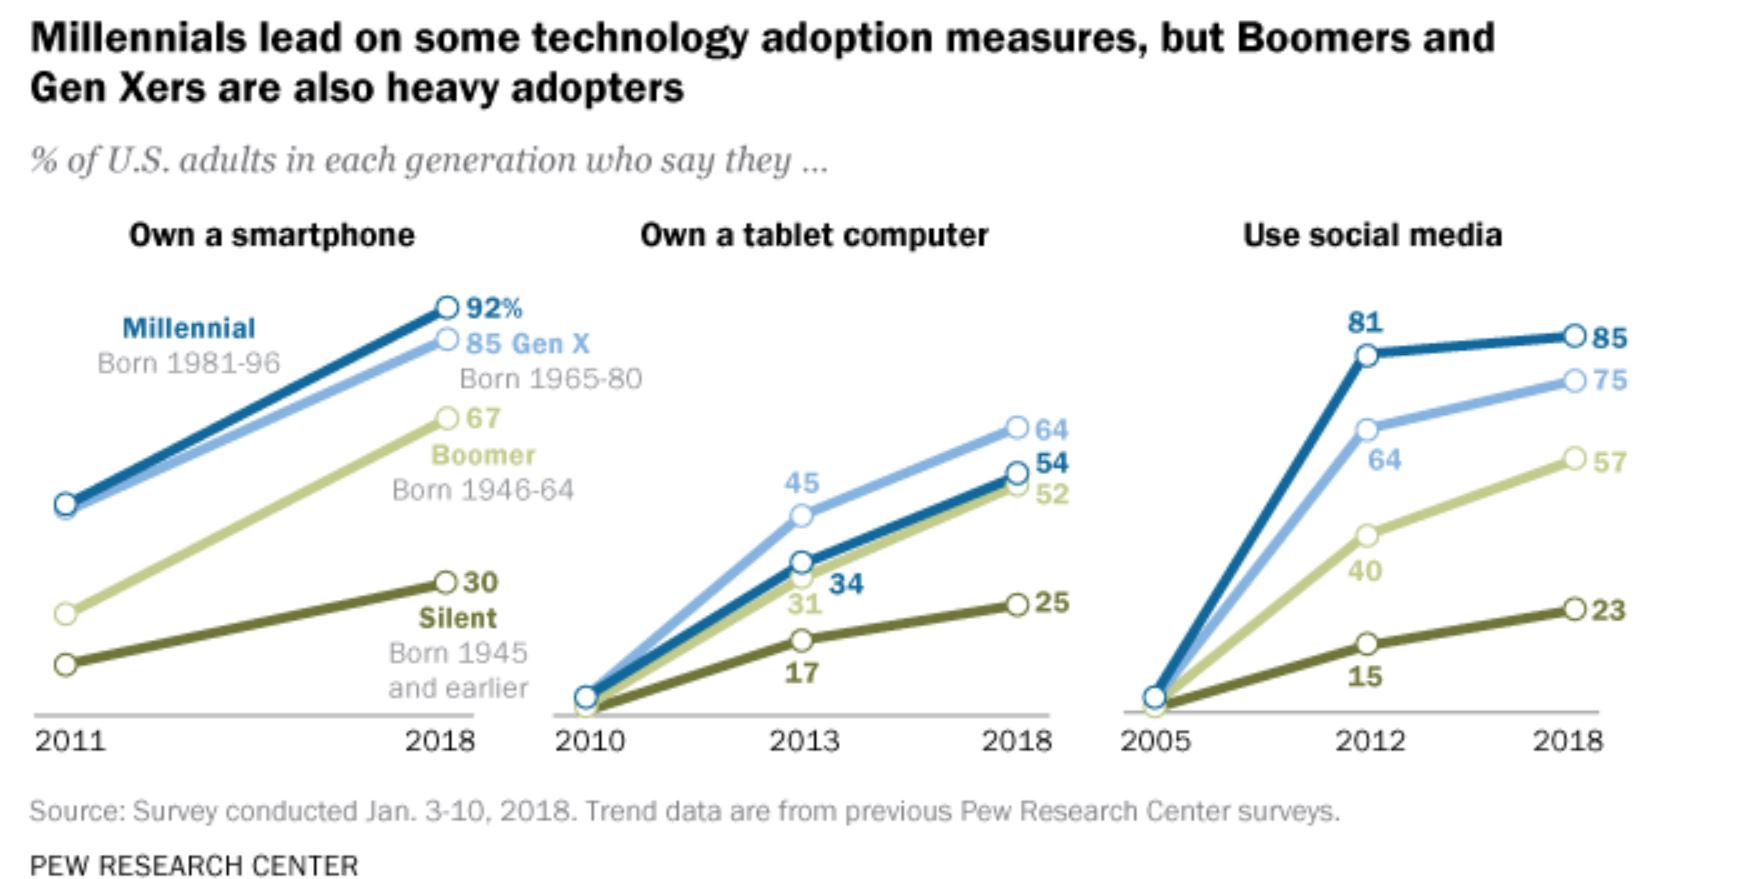 Adaption of Technology & Social Media by Age Groups